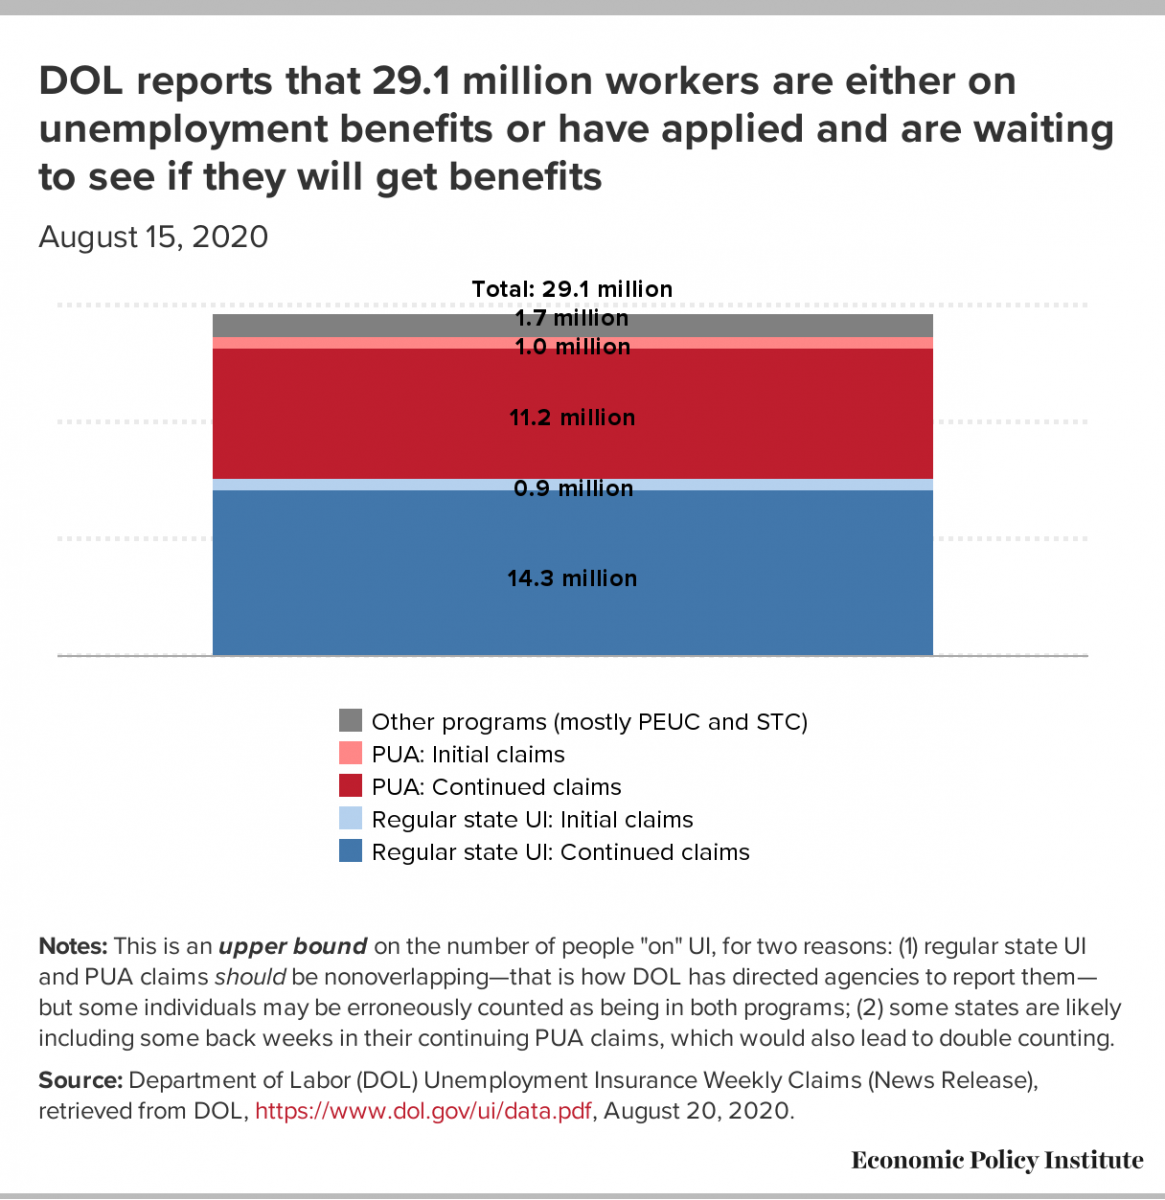 DOL numbers as of Aug 15